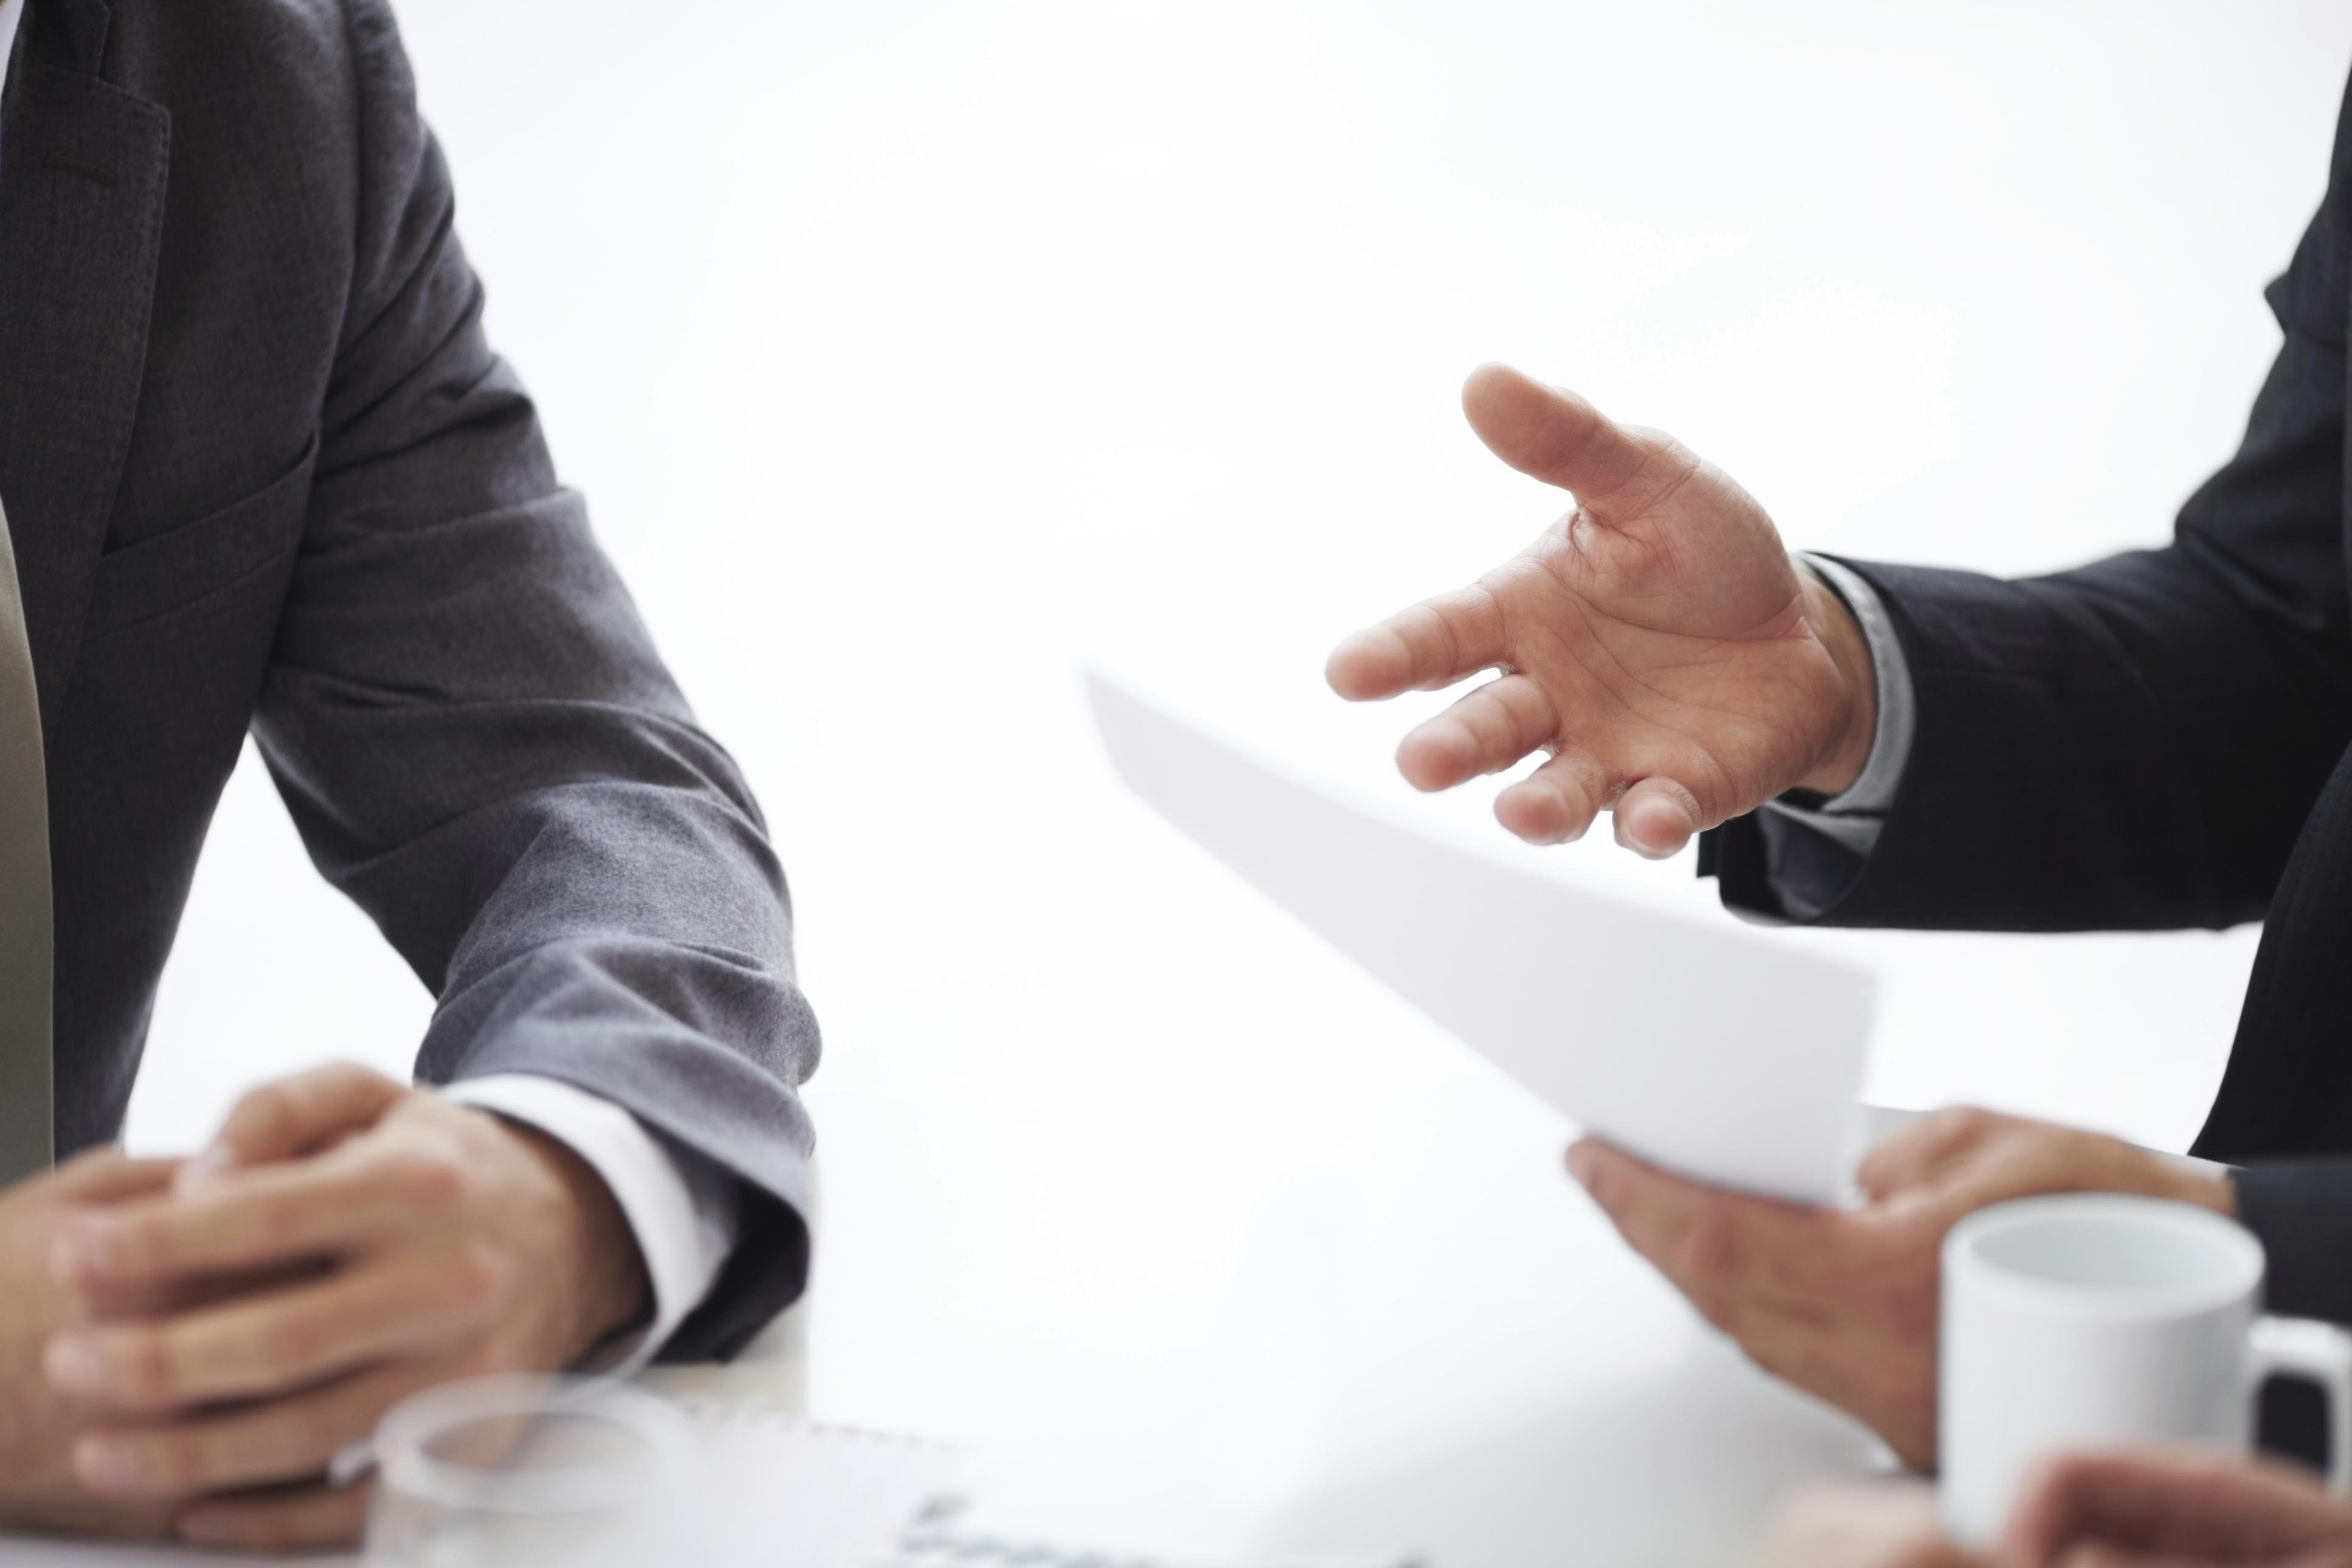 how to write reprimand letters for employee performance